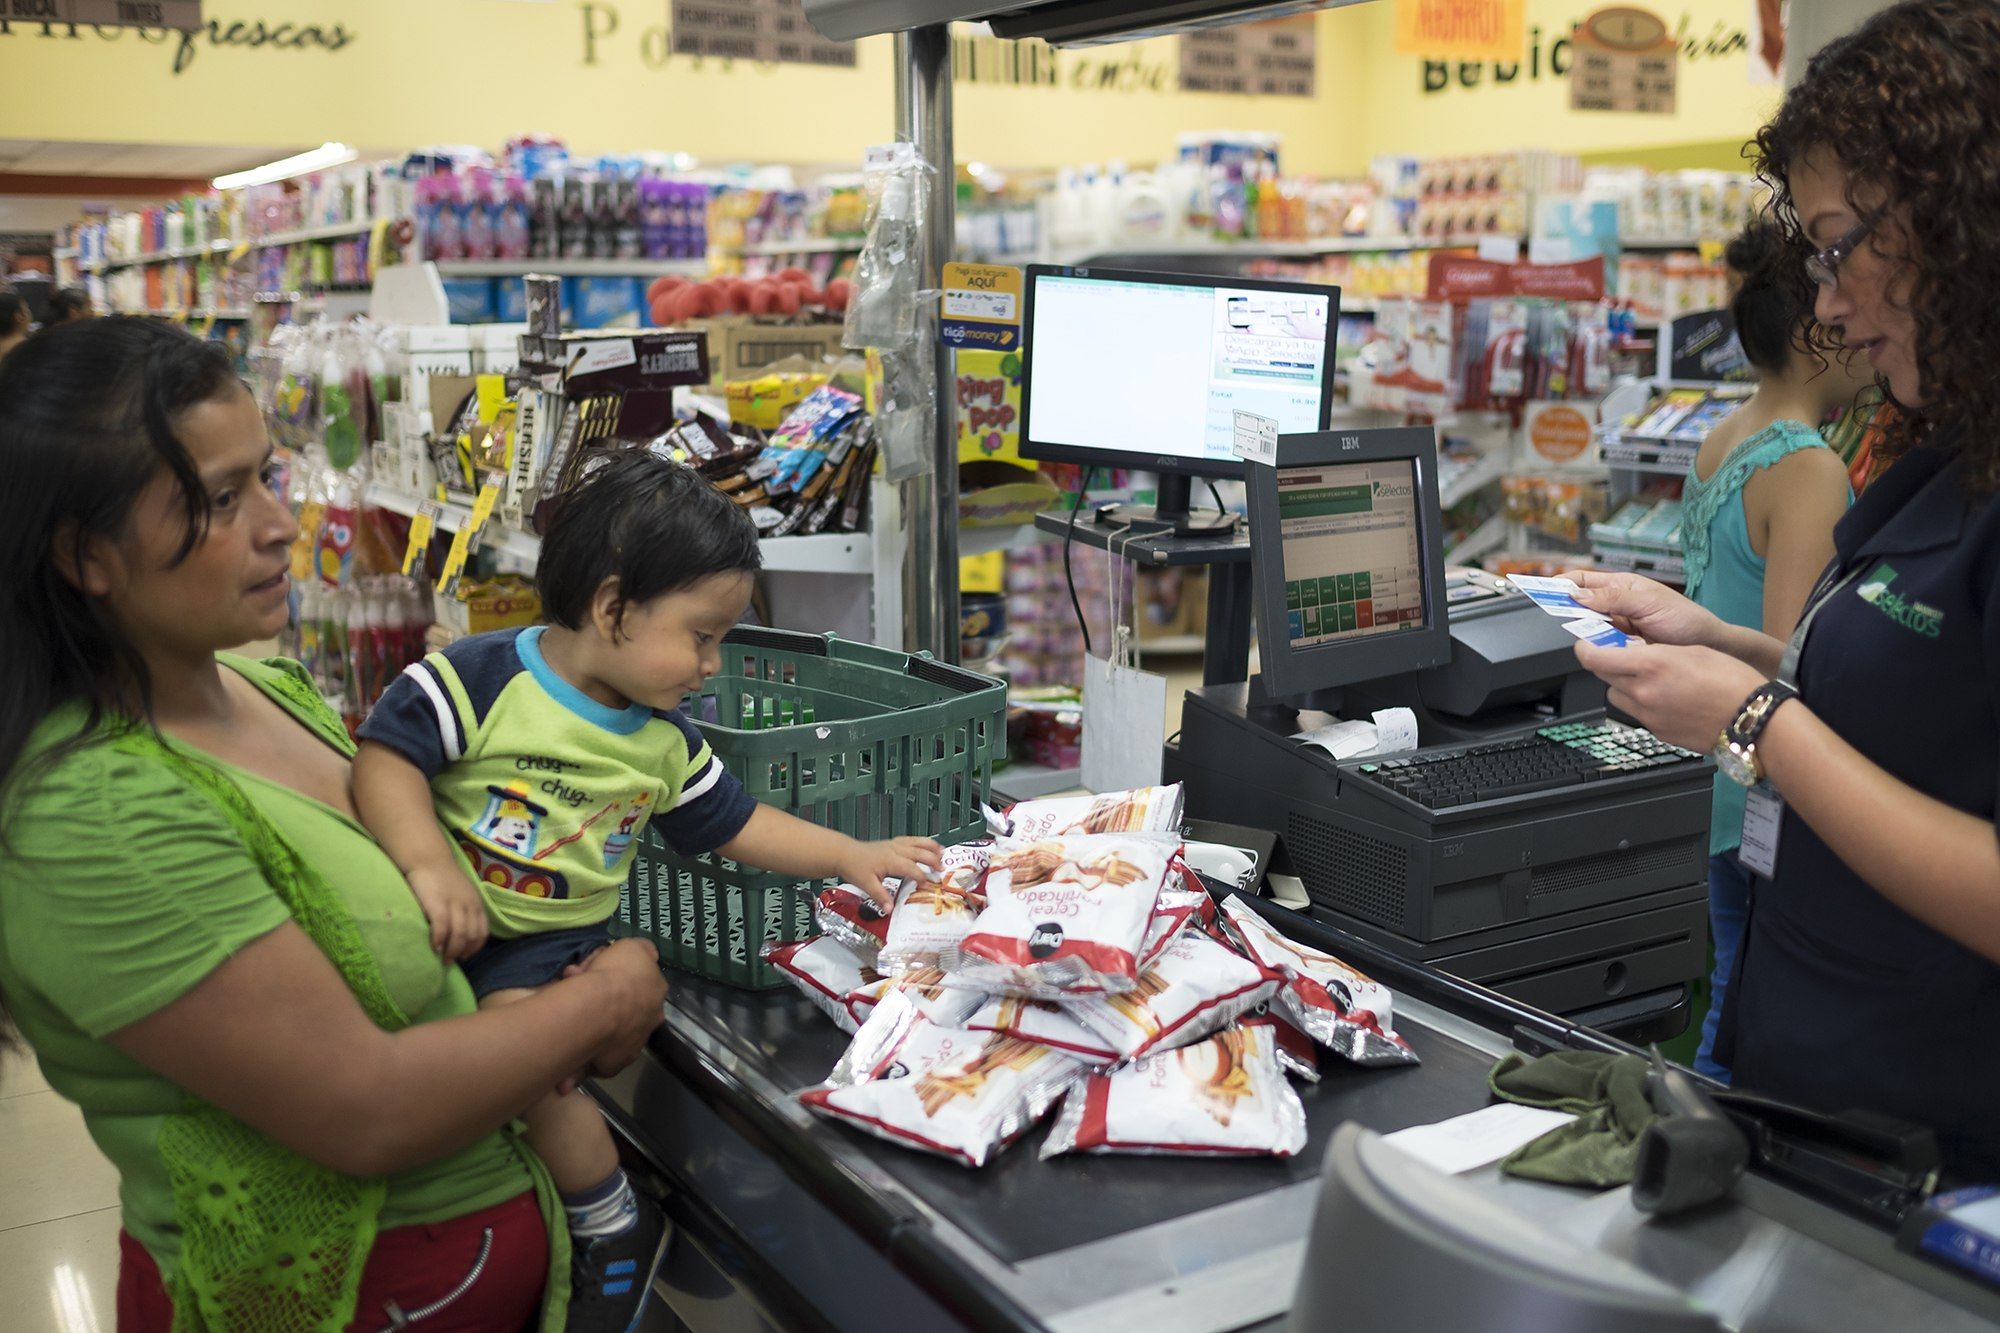 A woman stands at the checkout line with her baby in her arms, while the cashier checks her e-card